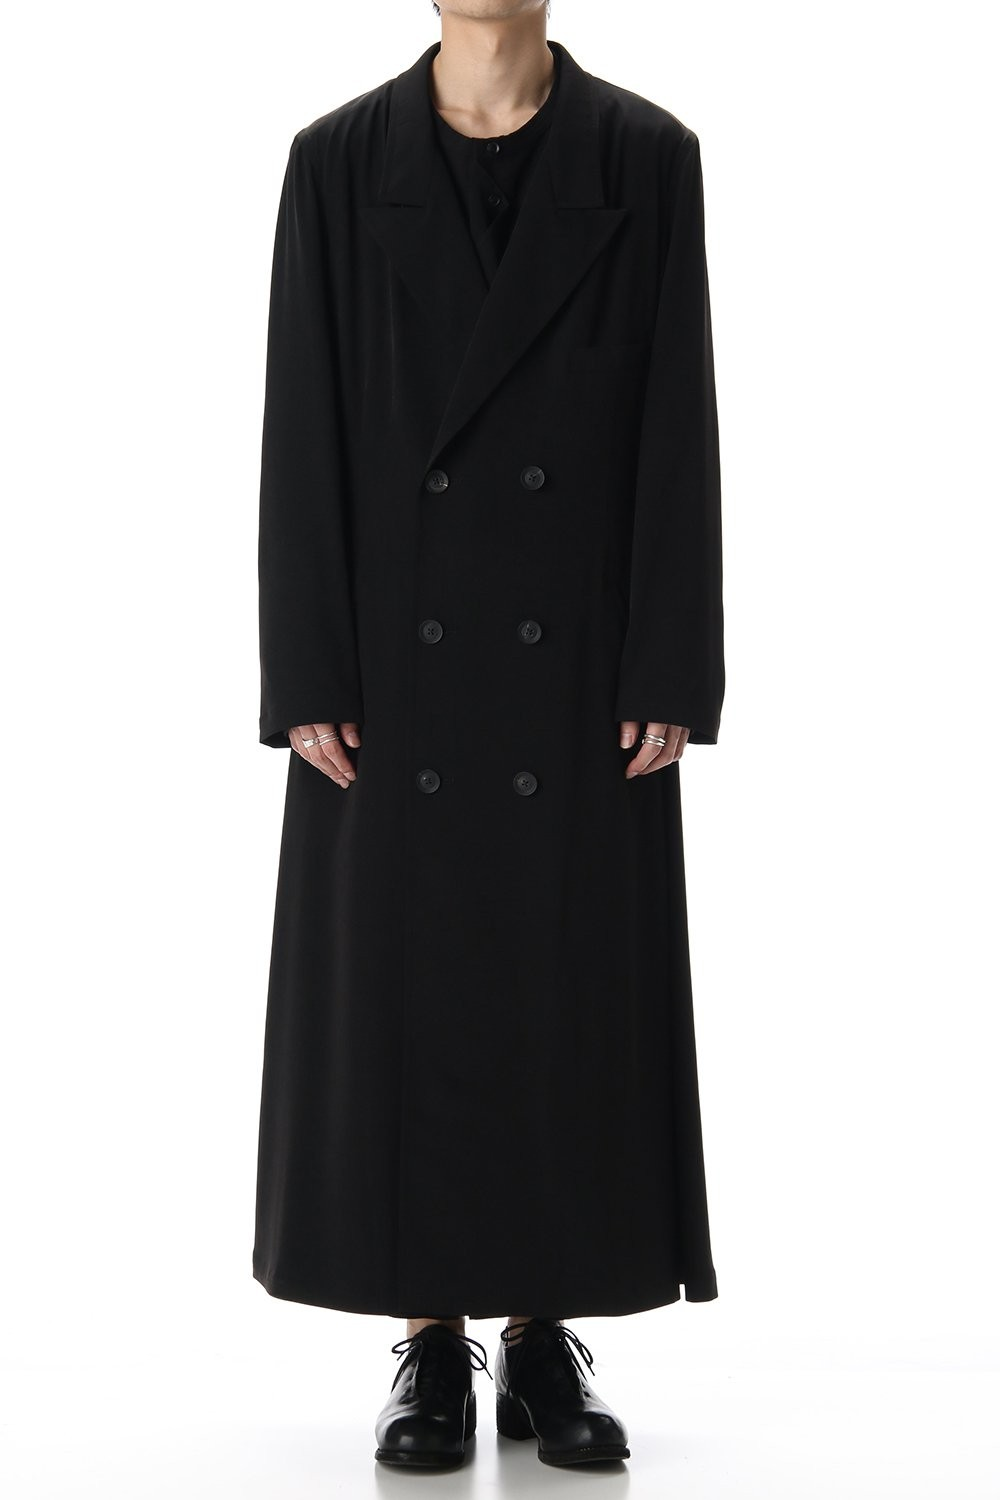 TA/Tuxedo Peaked Long dress